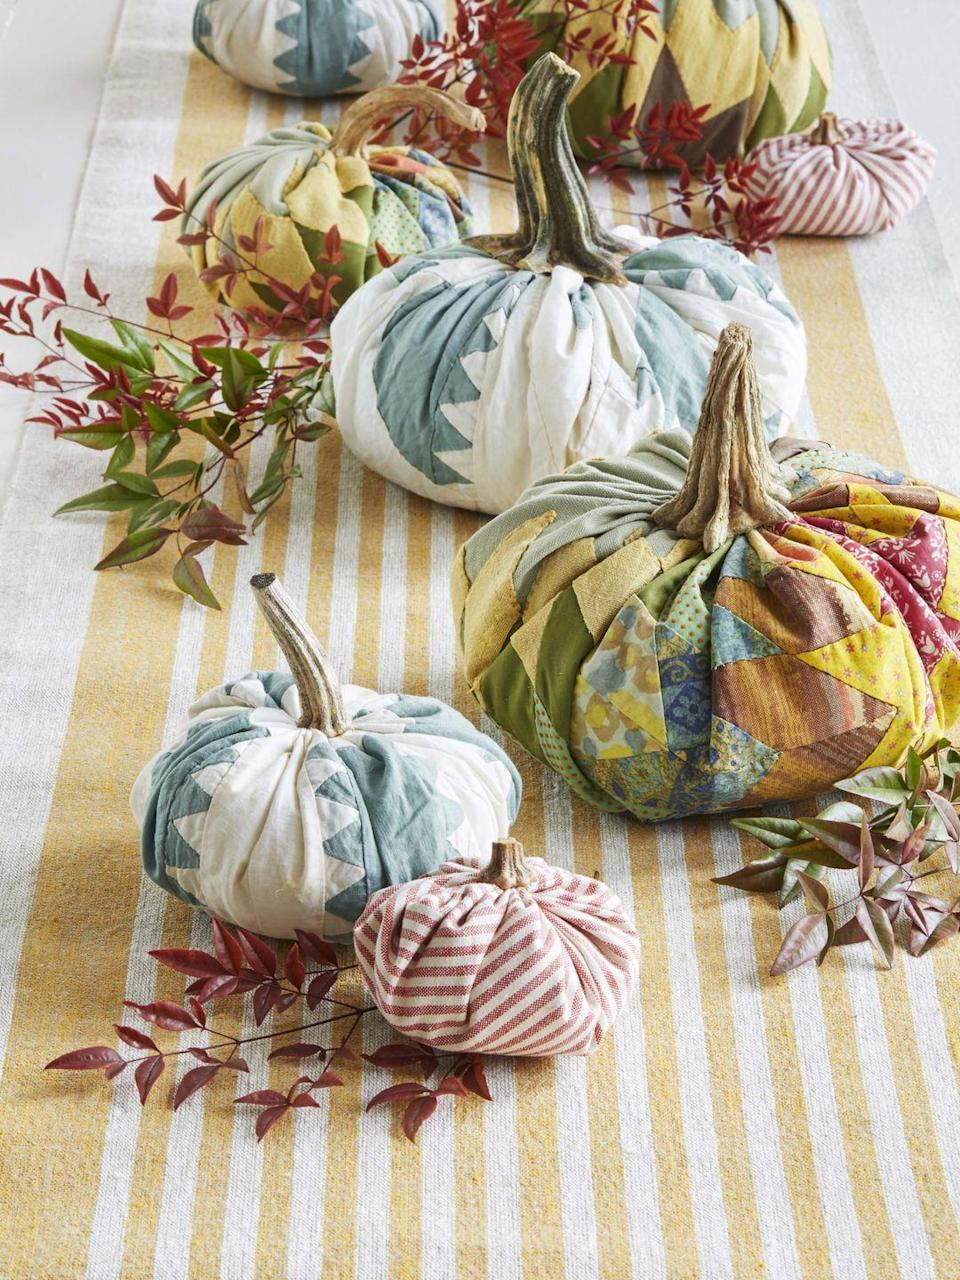 """<p>Craft your own personal pumpkin patch using old quilts and fabric scraps. <strong><br></strong></p><p><strong>To make:</strong> Start with a round piece of fabric and a ball of batting (about the size you want your finished pumpkin to be). Gather the fabric up around the batting and hot glue it together in the center. Collect dried stems, or purchase faux stems, and attach with hot glue for a realistic touch. Line the middle of a long farmhouse table with a runner, then pile on your creations and other seasonal greenery. These would be an adorable accent to a mantel or buffet as well.</p><p><a class=""""link rapid-noclick-resp"""" href=""""https://www.amazon.com/s?k=pumpkin+stems&i=handmade&ref=nb_sb_noss_2&tag=syn-yahoo-20&ascsubtag=%5Bartid%7C10050.g.2063%5Bsrc%7Cyahoo-us"""" rel=""""nofollow noopener"""" target=""""_blank"""" data-ylk=""""slk:SHOP FAUX PUMPKIN STEMS"""">SHOP FAUX PUMPKIN STEMS</a></p>"""